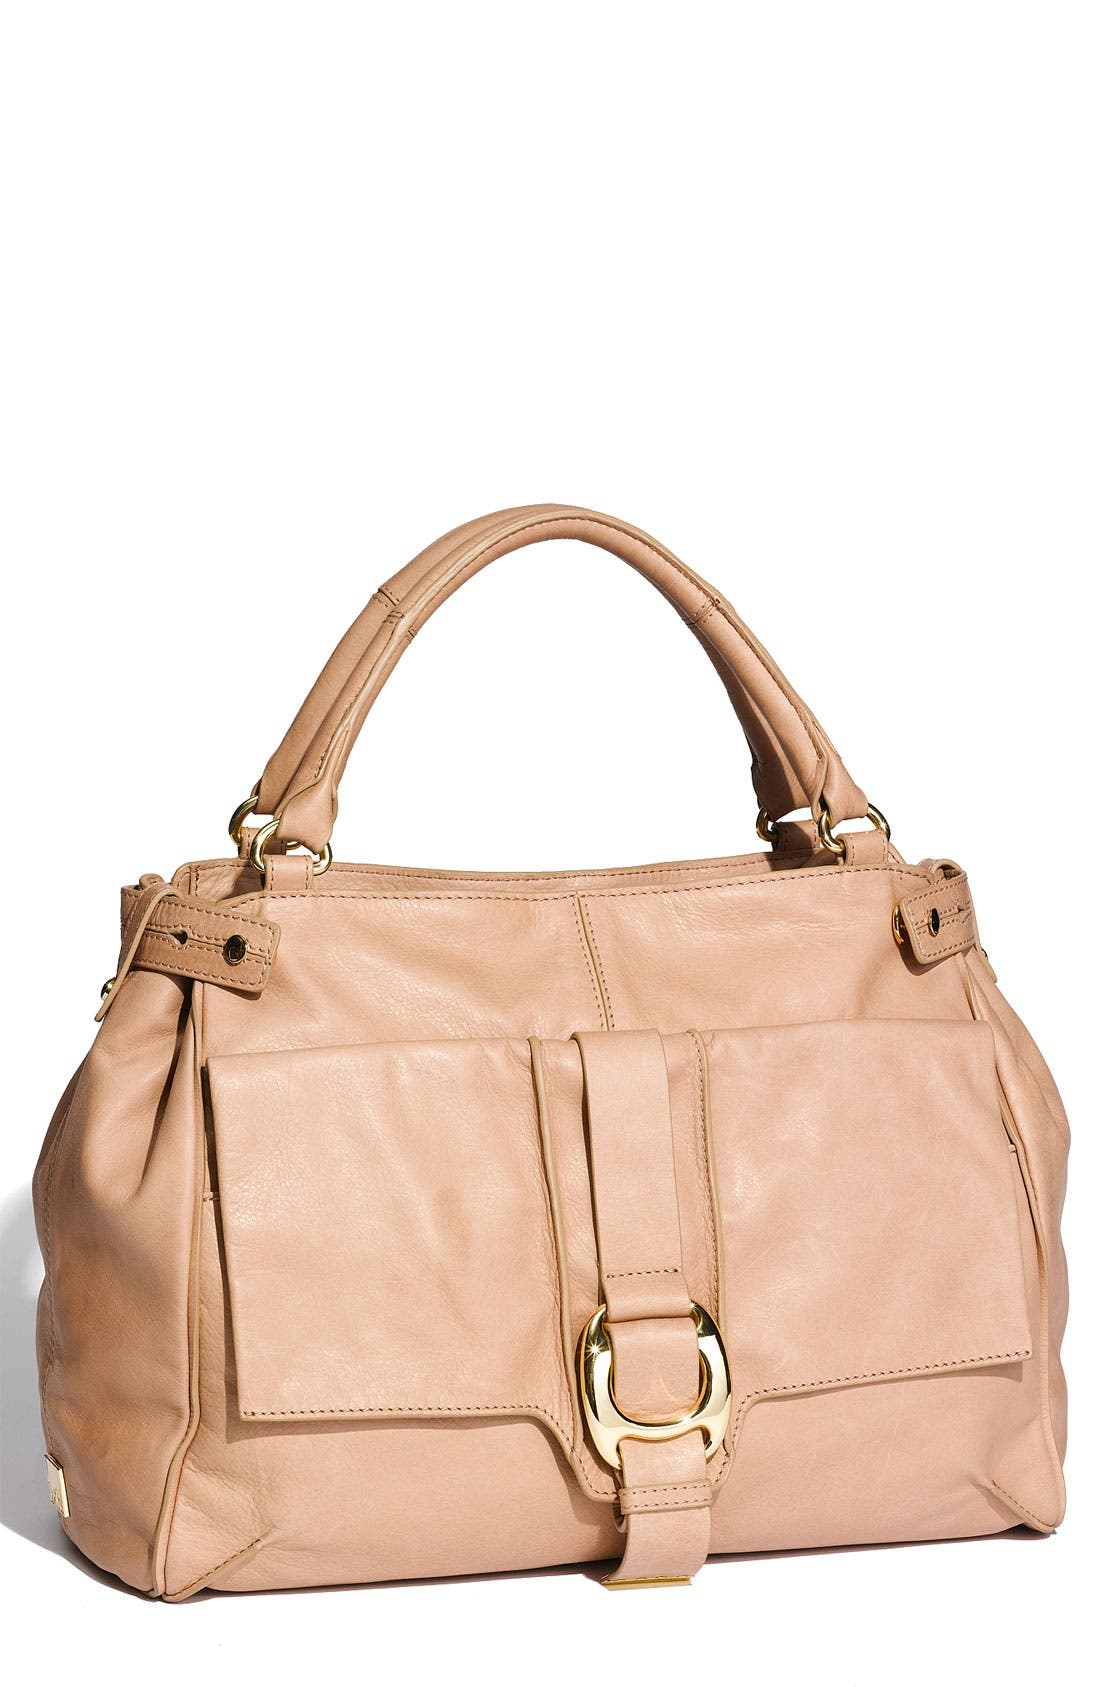 Alternate Image 1 Selected - Kooba 'Anya' Leather Satchel